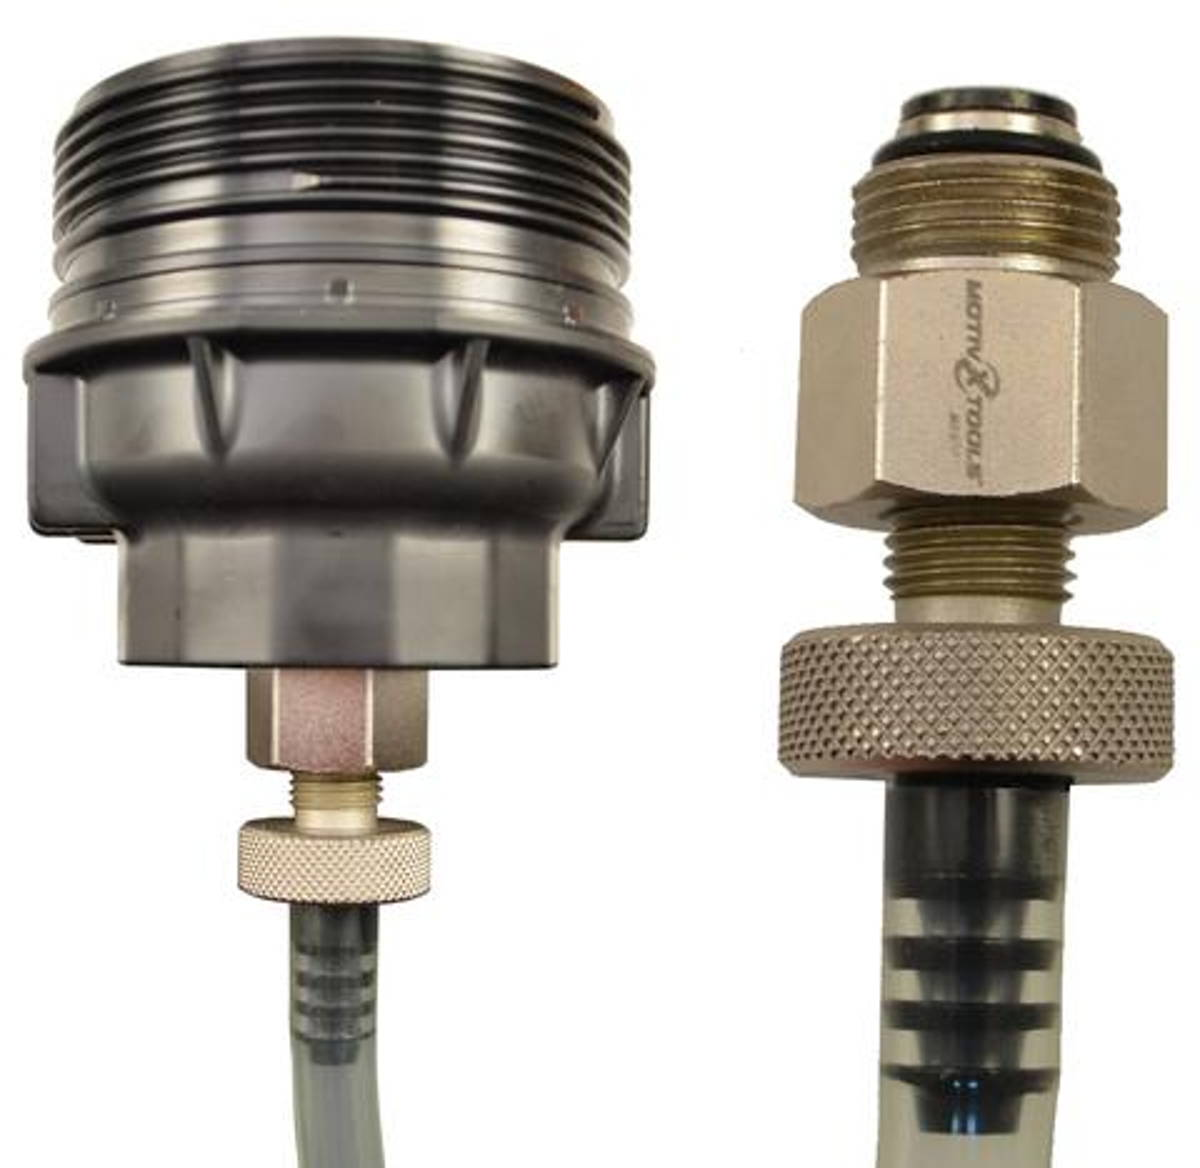 Specialty oil drain tool for Toyota vehicles